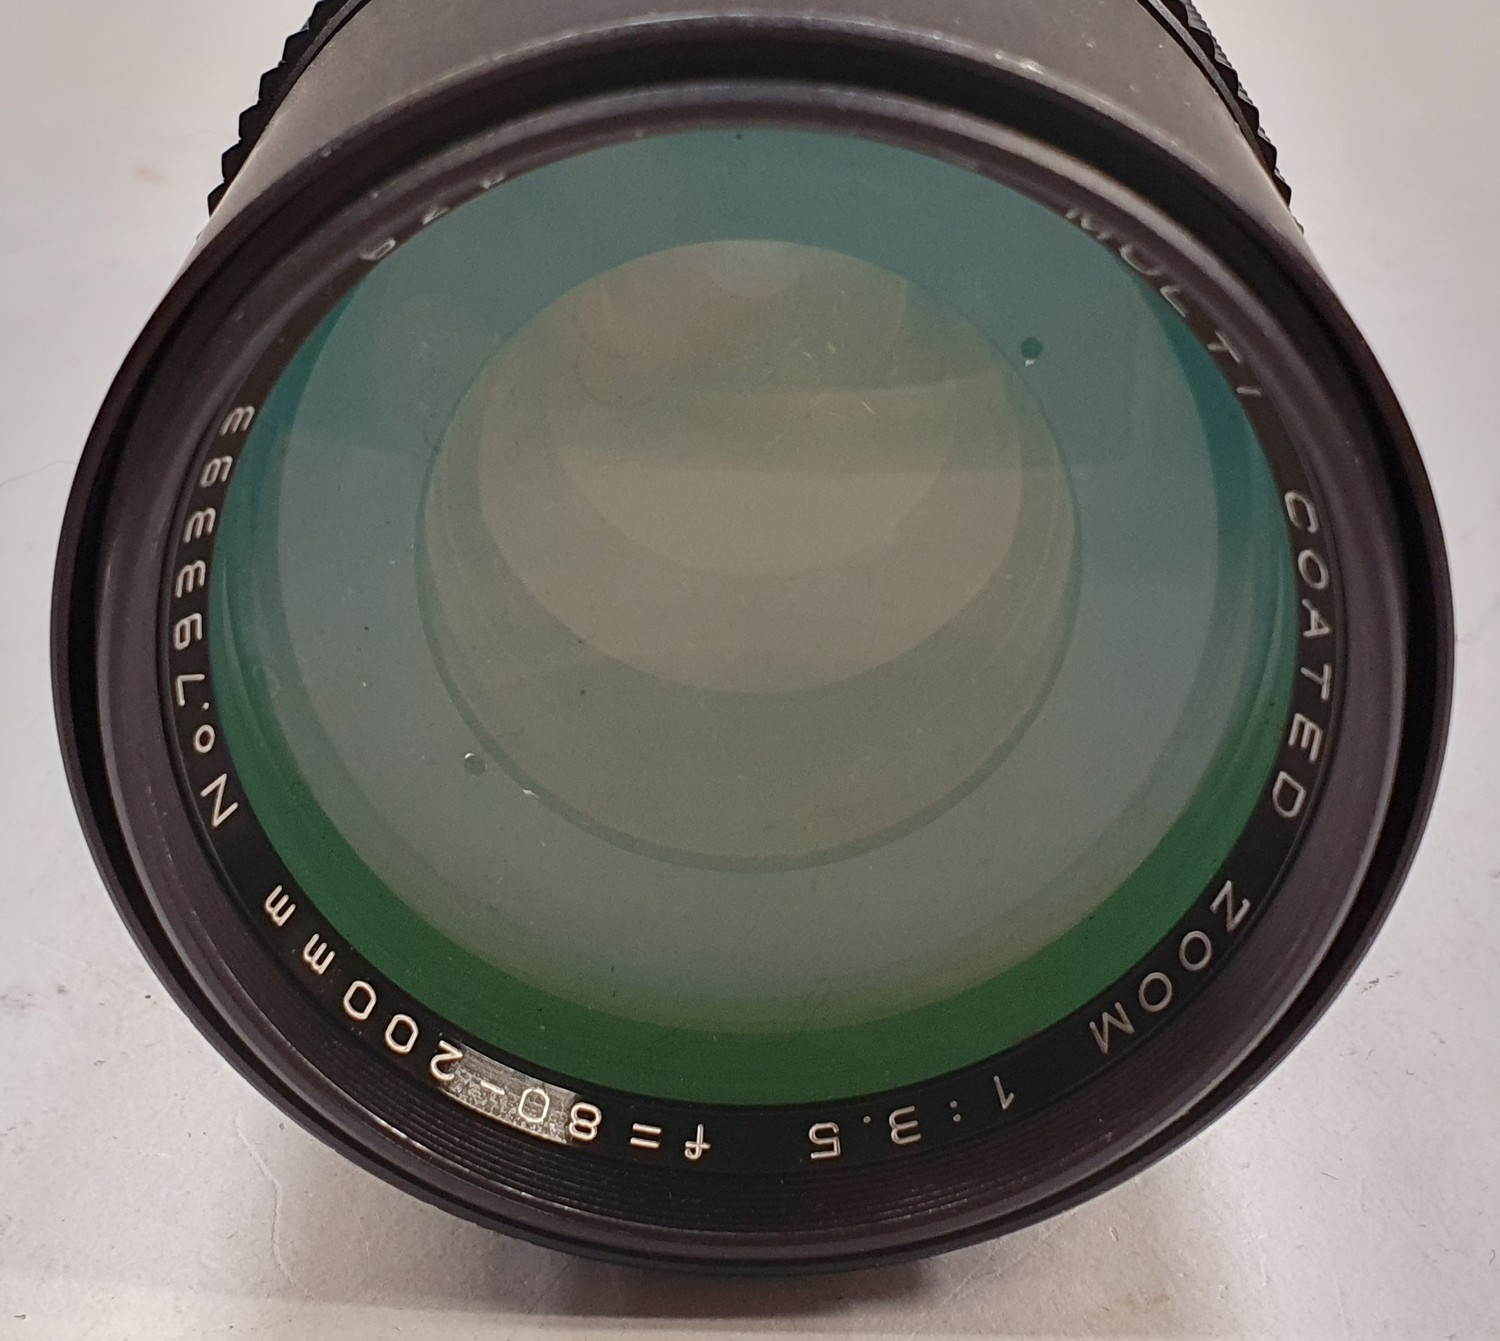 A collection of camera lenses to include Optomax, Nikon etc. - Image 8 of 9